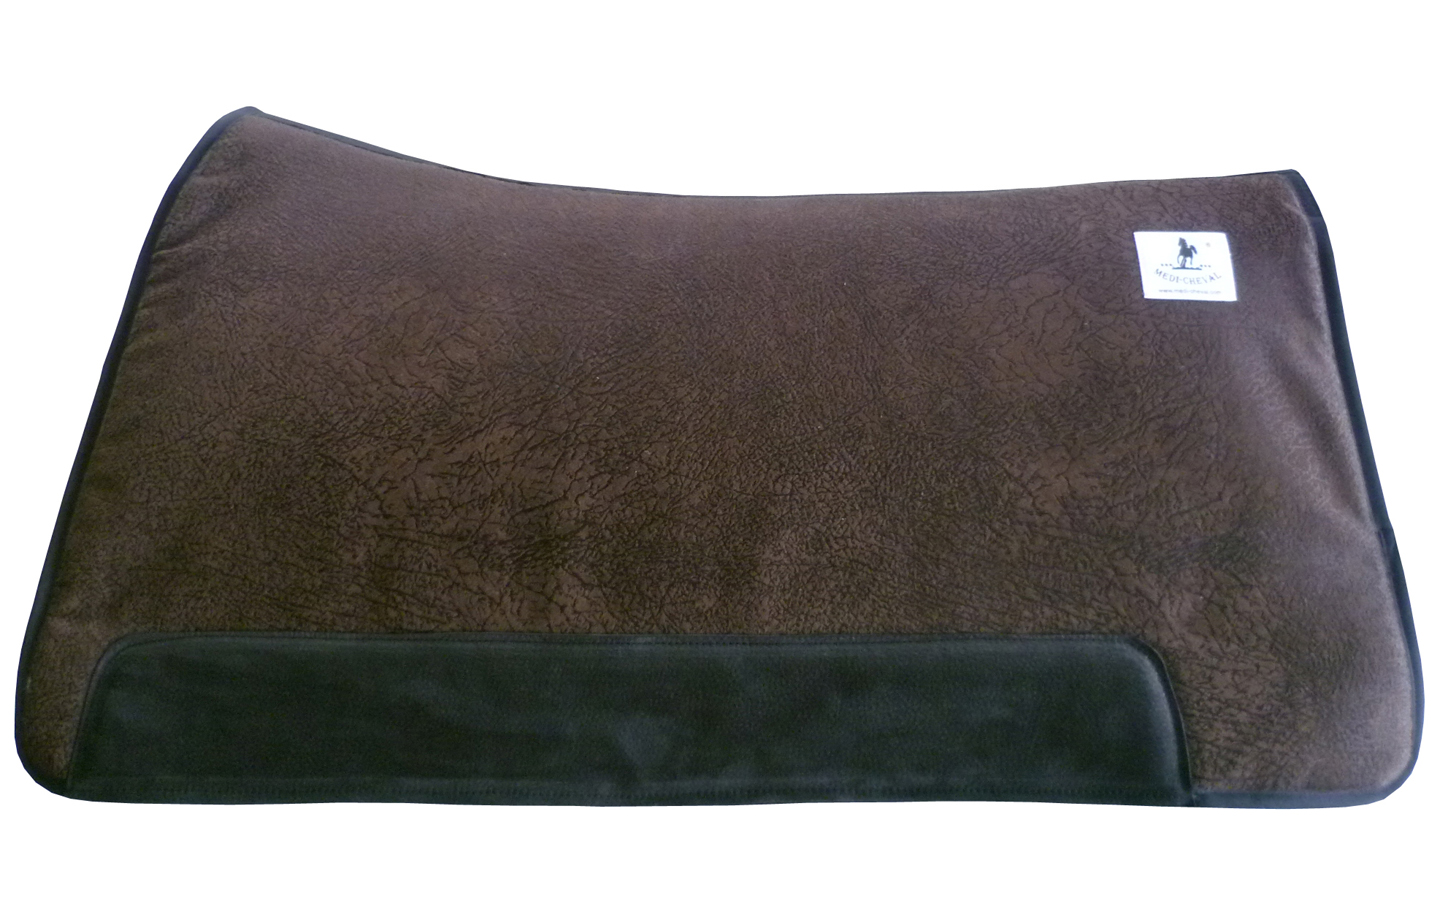 Westernsattelpad - cutting retro dark brown